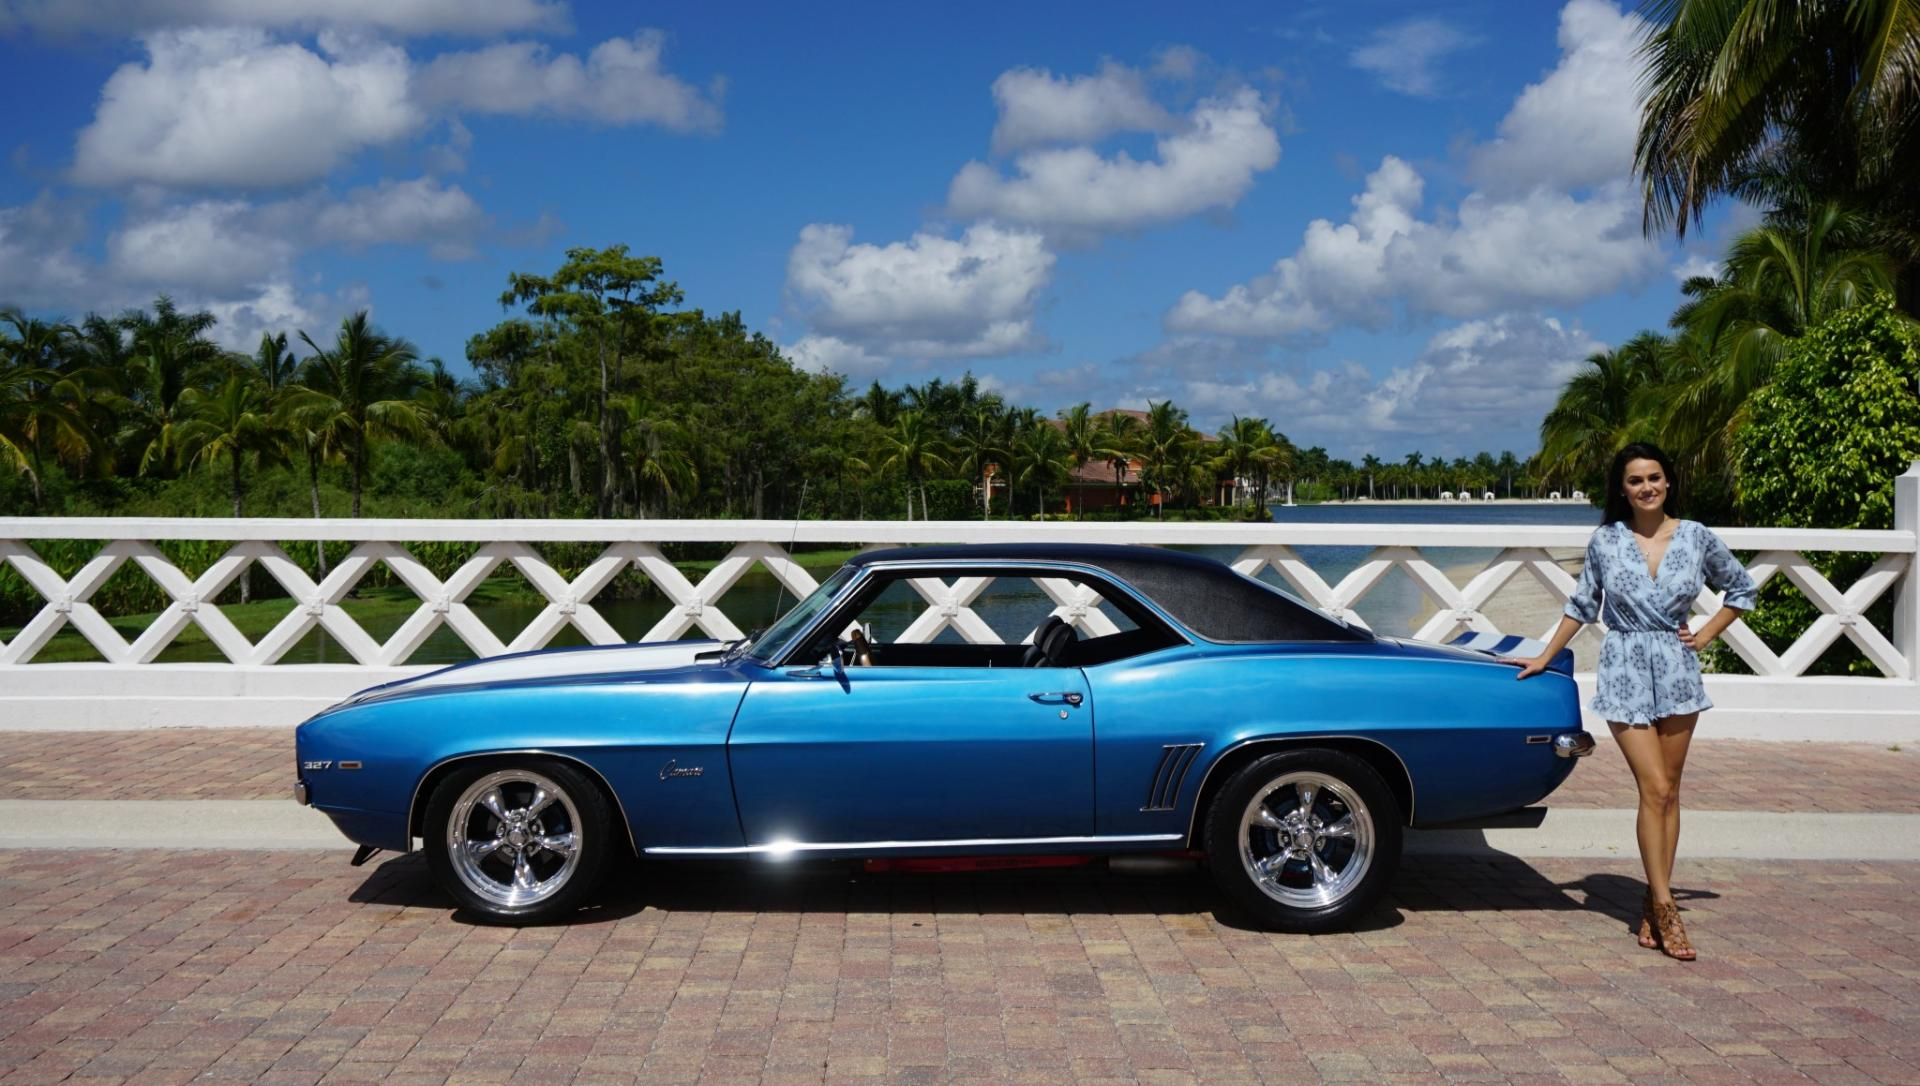 Used 1969 Chevrolet Camaro for sale Sold at Muscle Cars for Sale Inc. in Fort Myers FL 33912 8